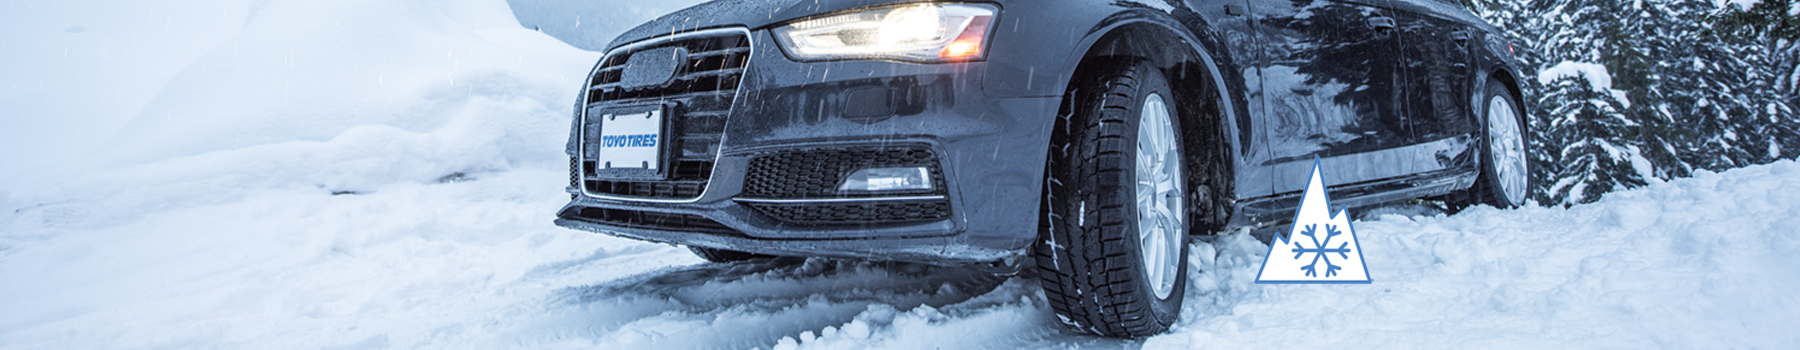 Toyo's GSi-6 studless winter tire is designed for the toughest winter conditions